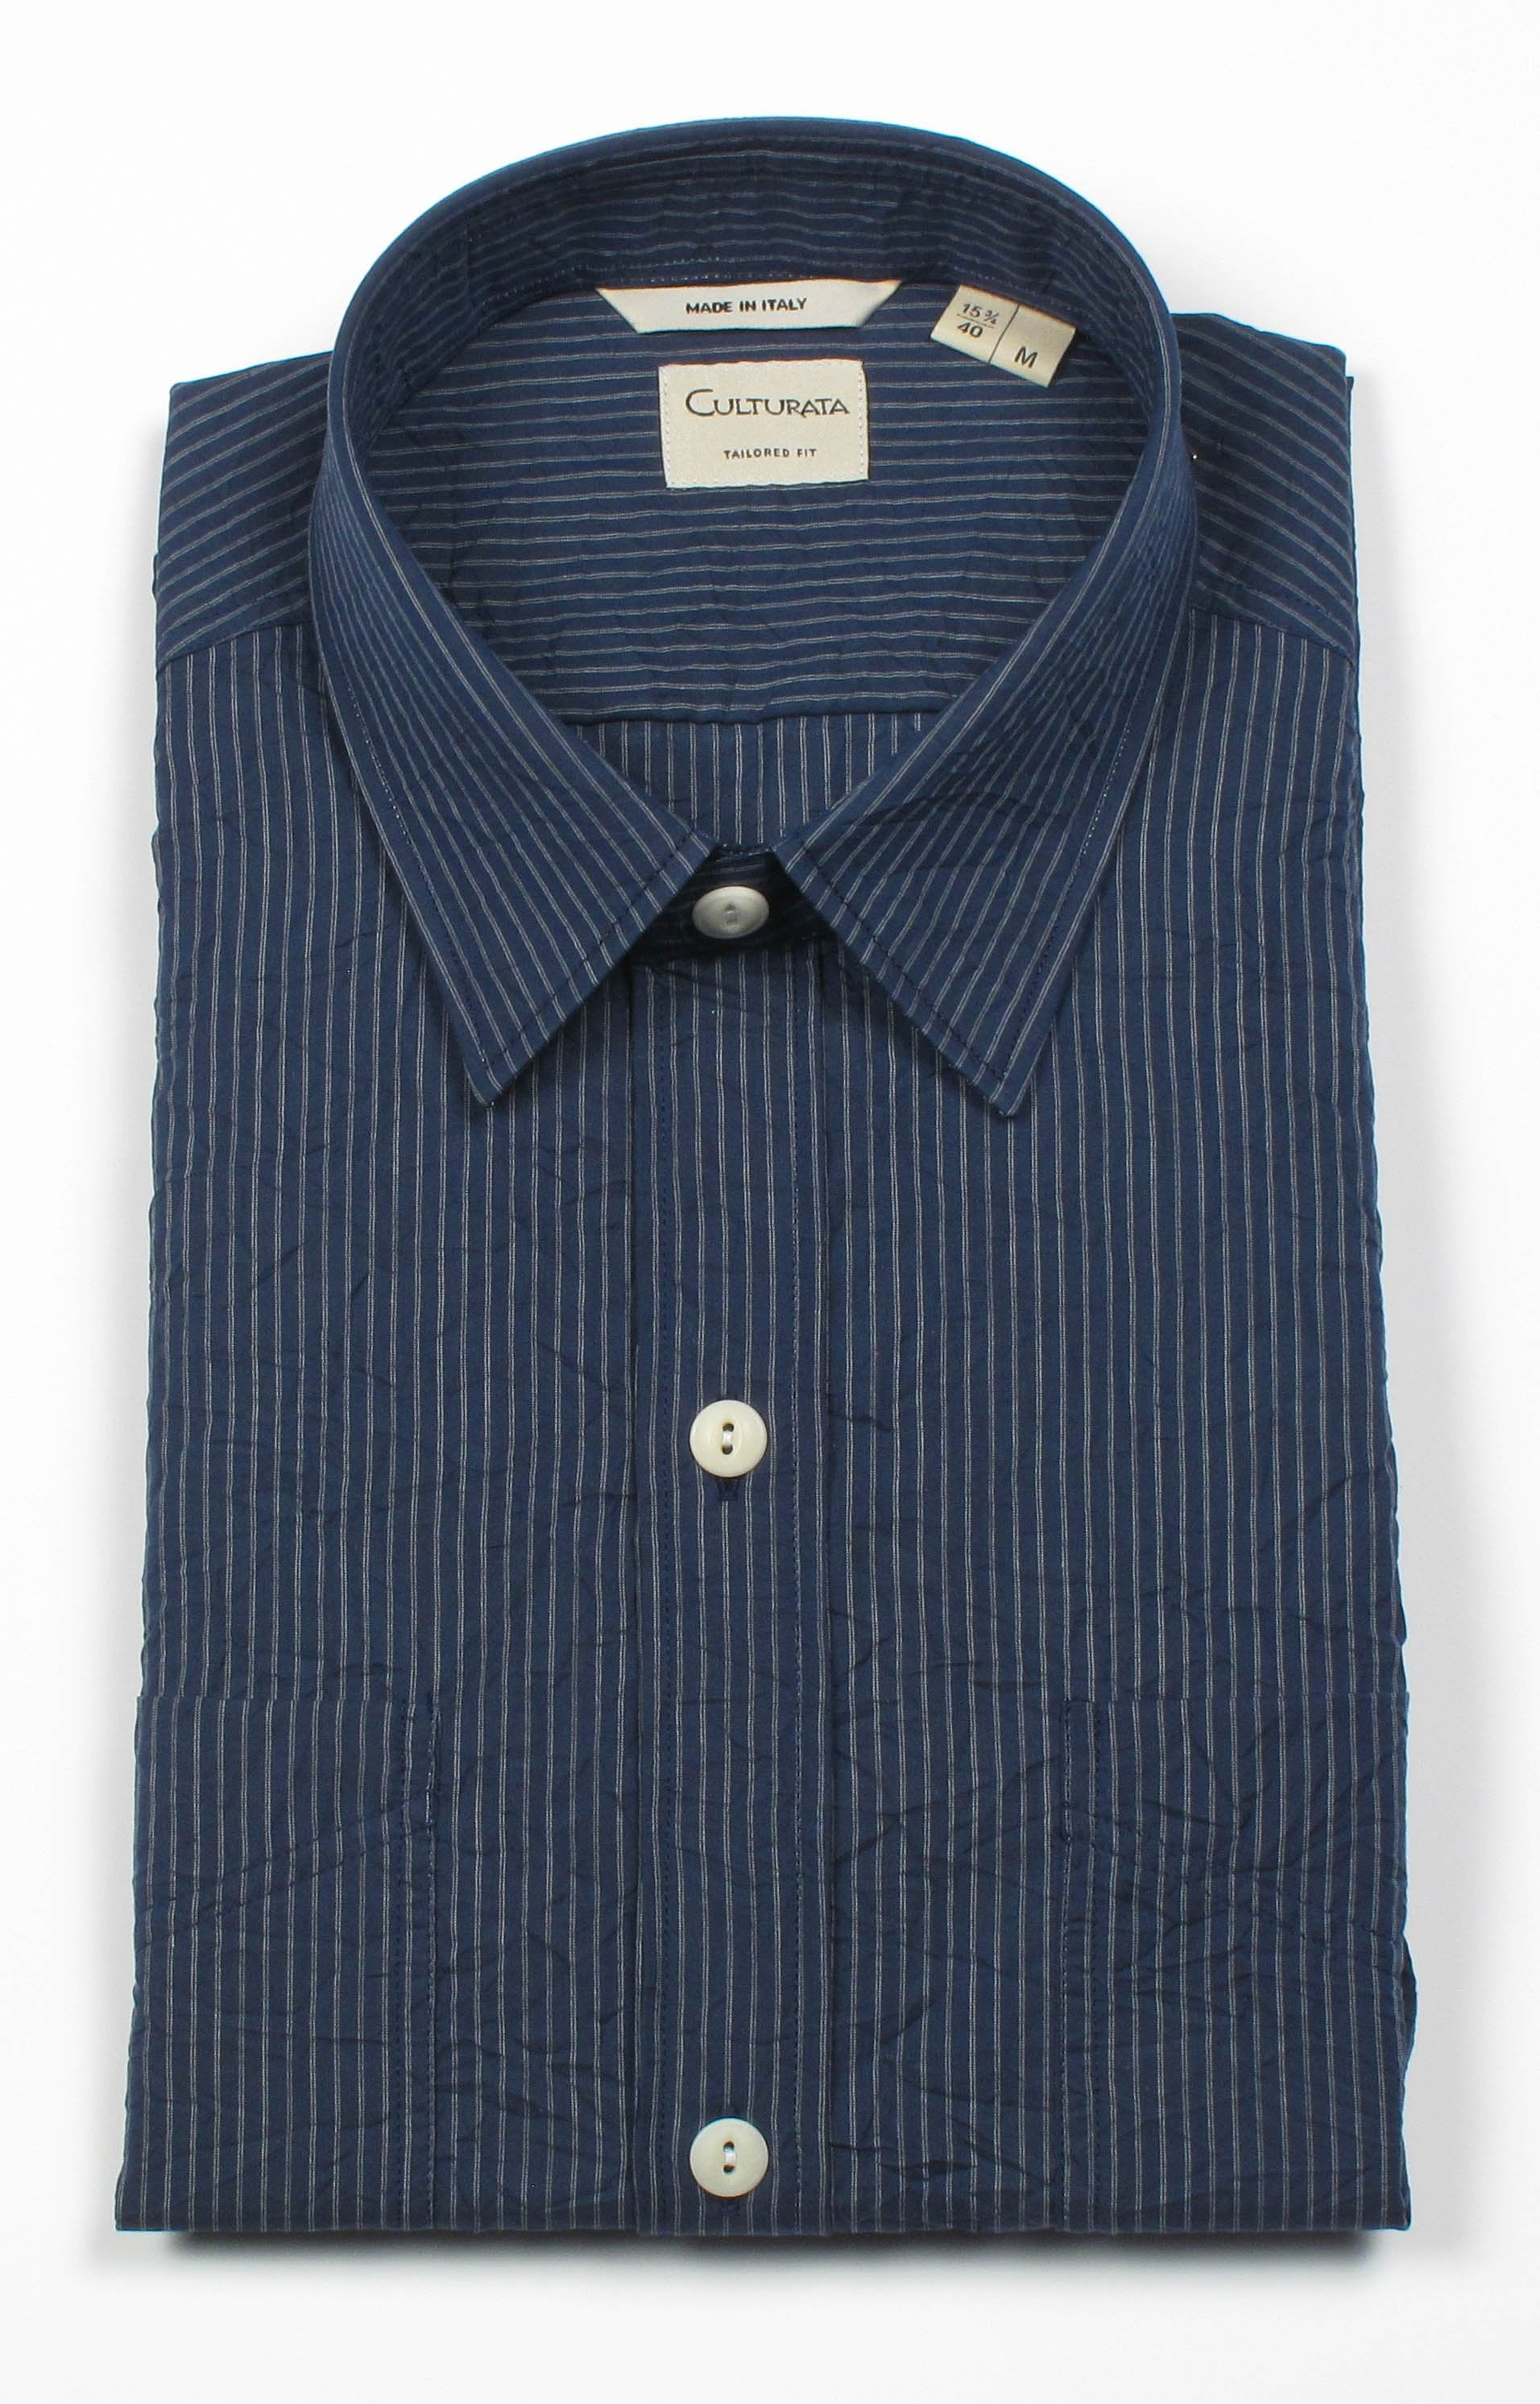 Men's Softest Cotton Shirts